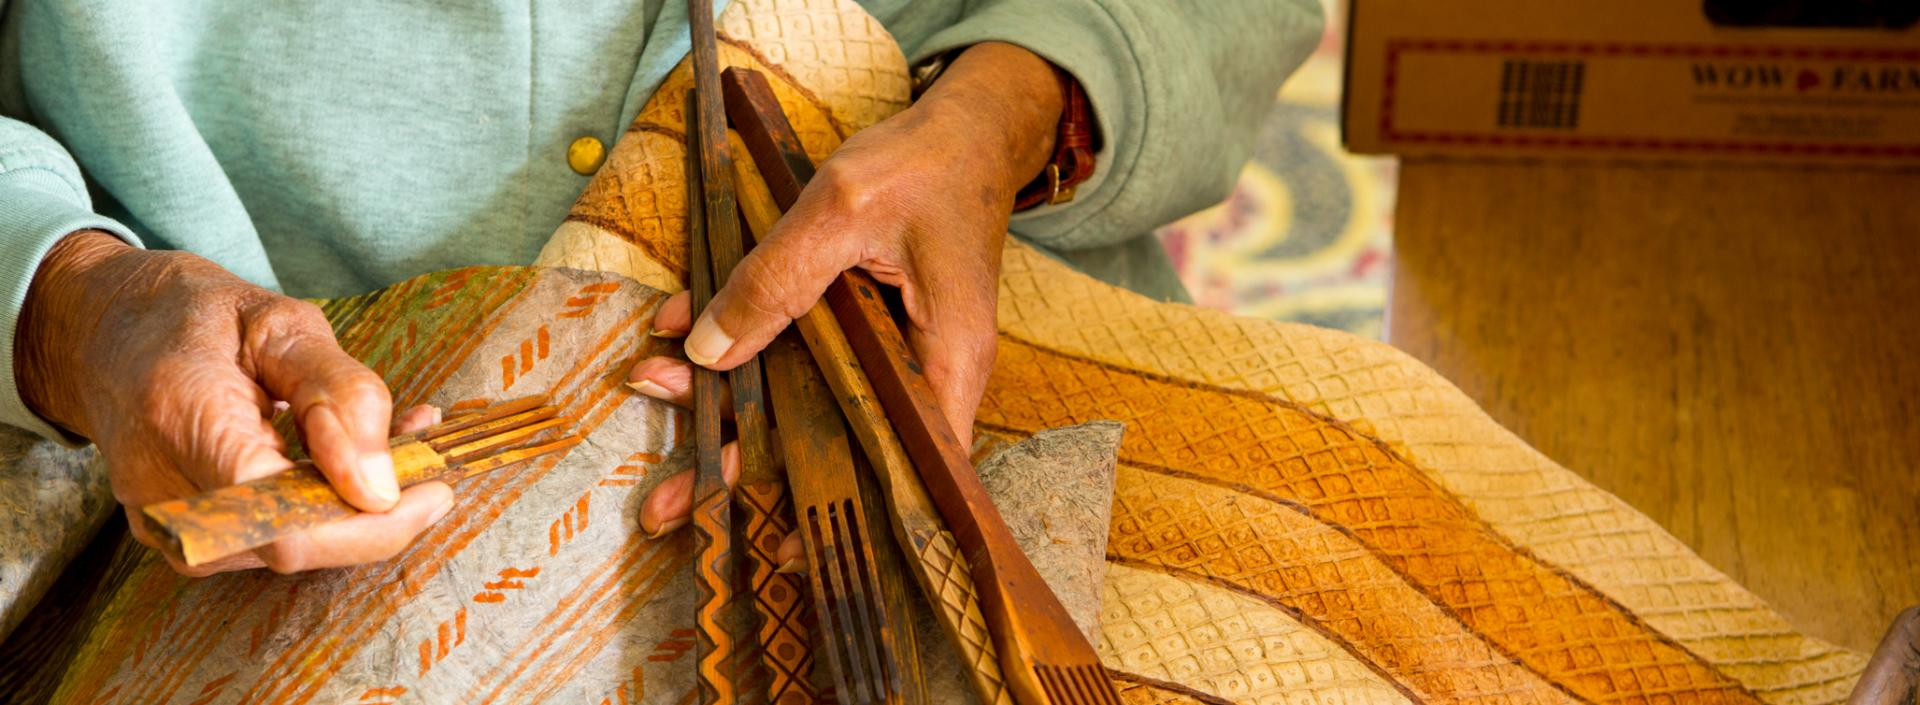 Big Island Arts and Culture - artisan working